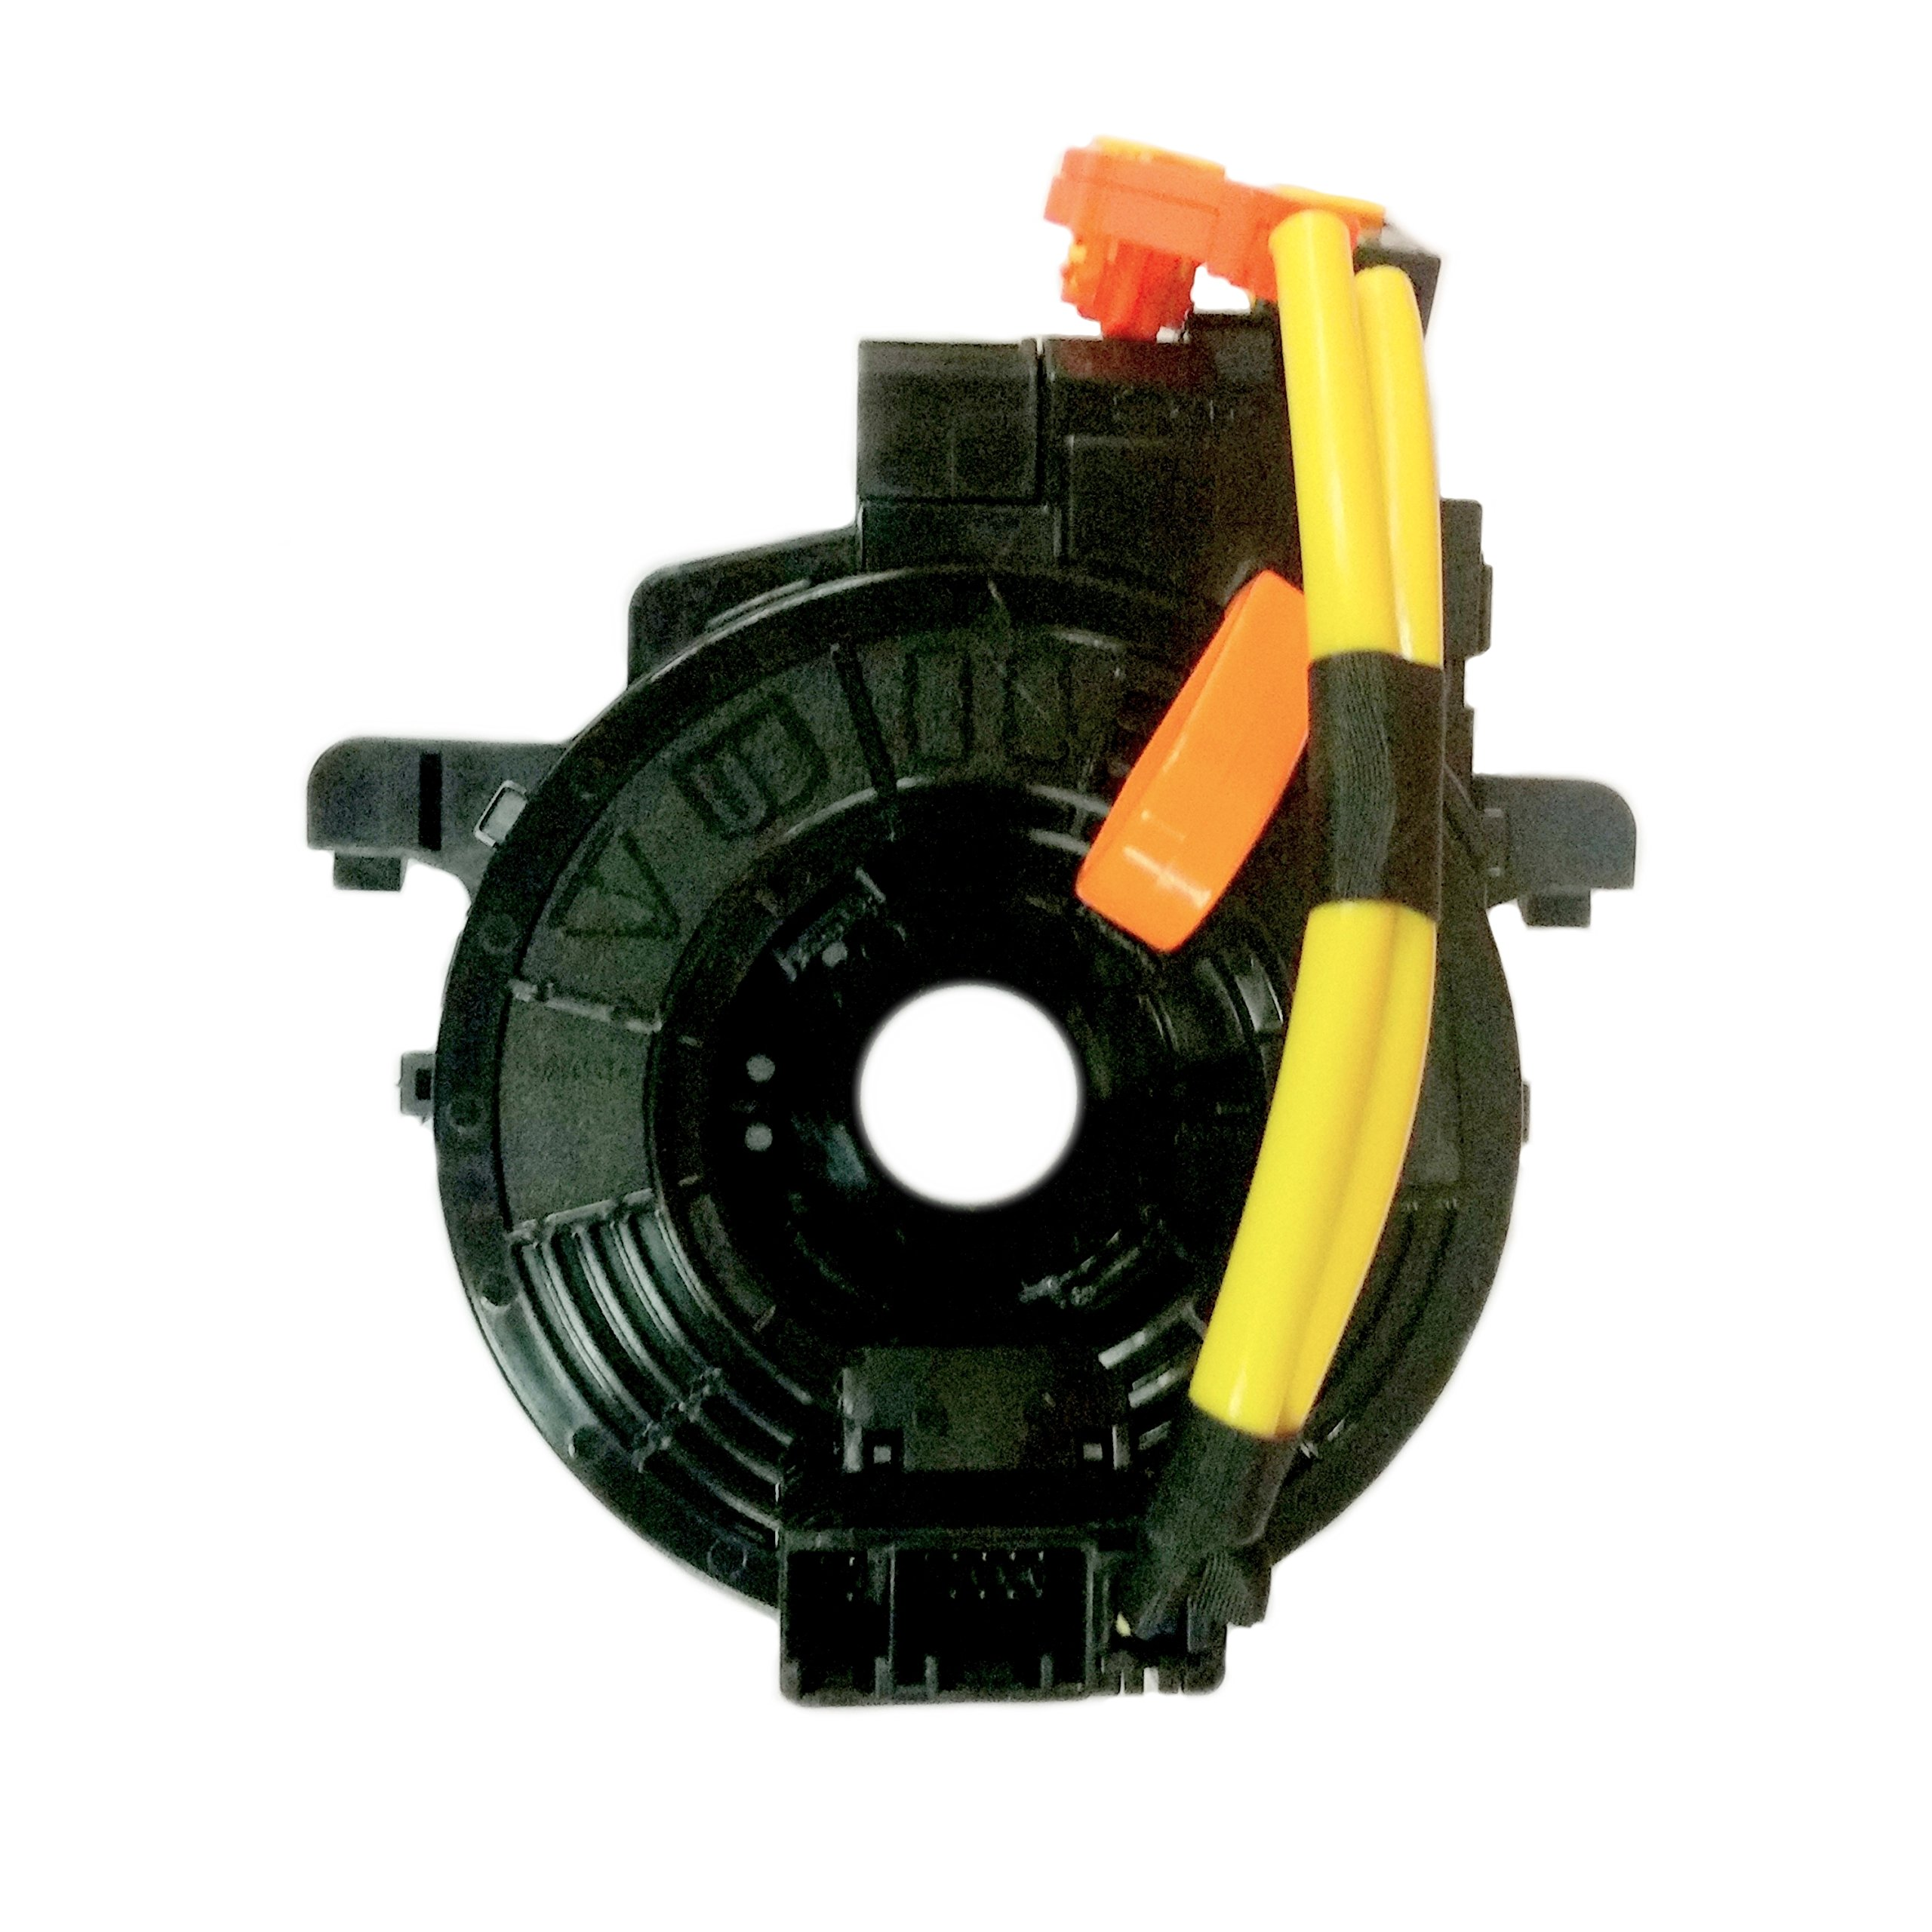 Replacement part Toyota Spiral Cable Sub Assembly by Toyota